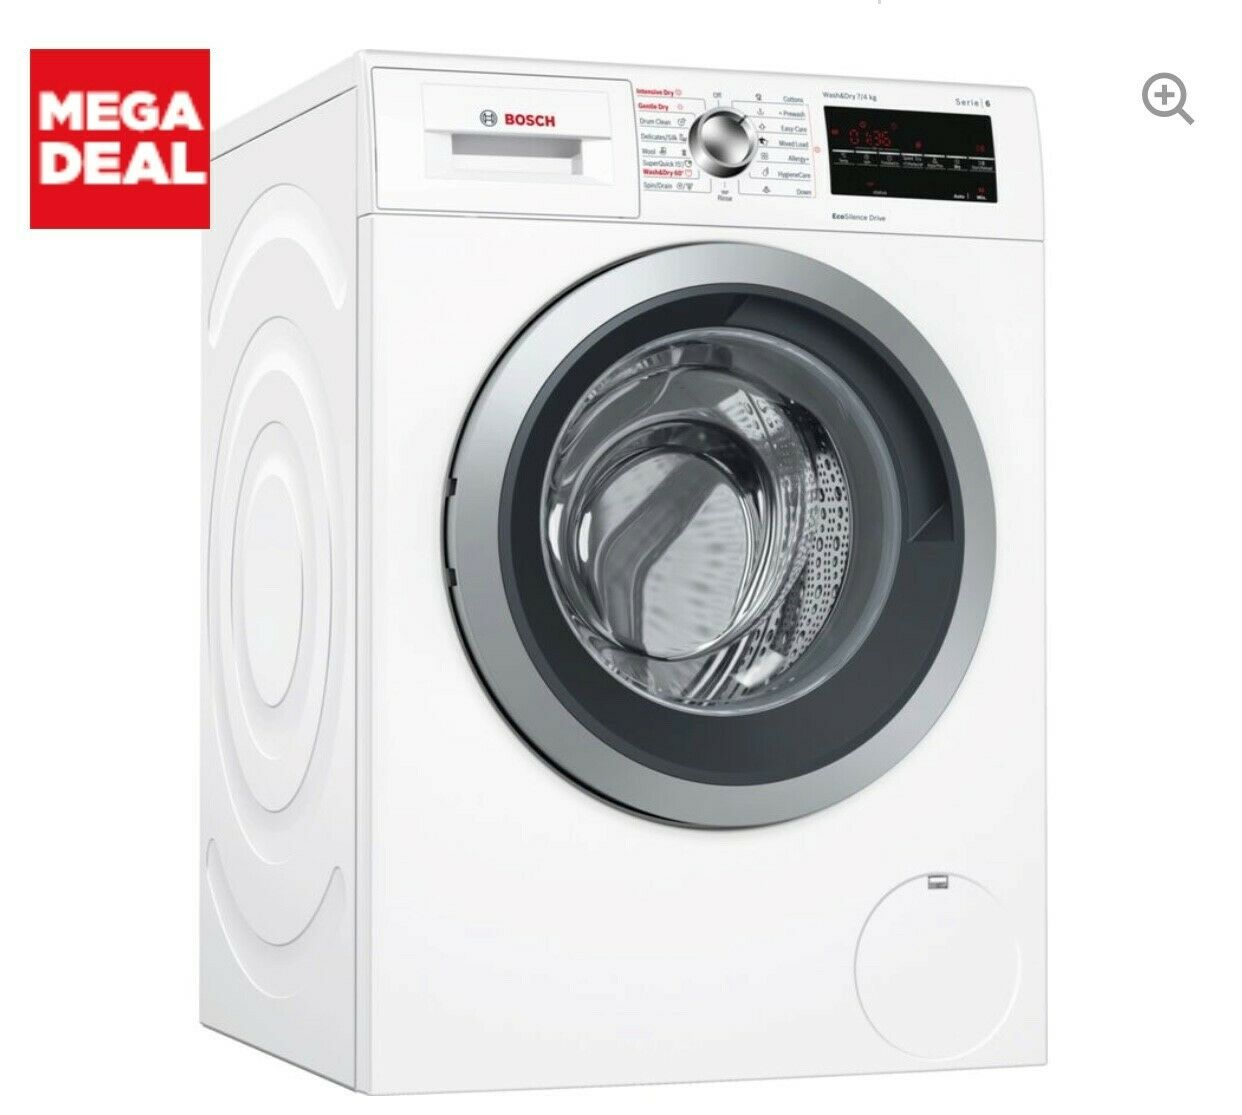 Bosch washer/dryer model WVG30462GB